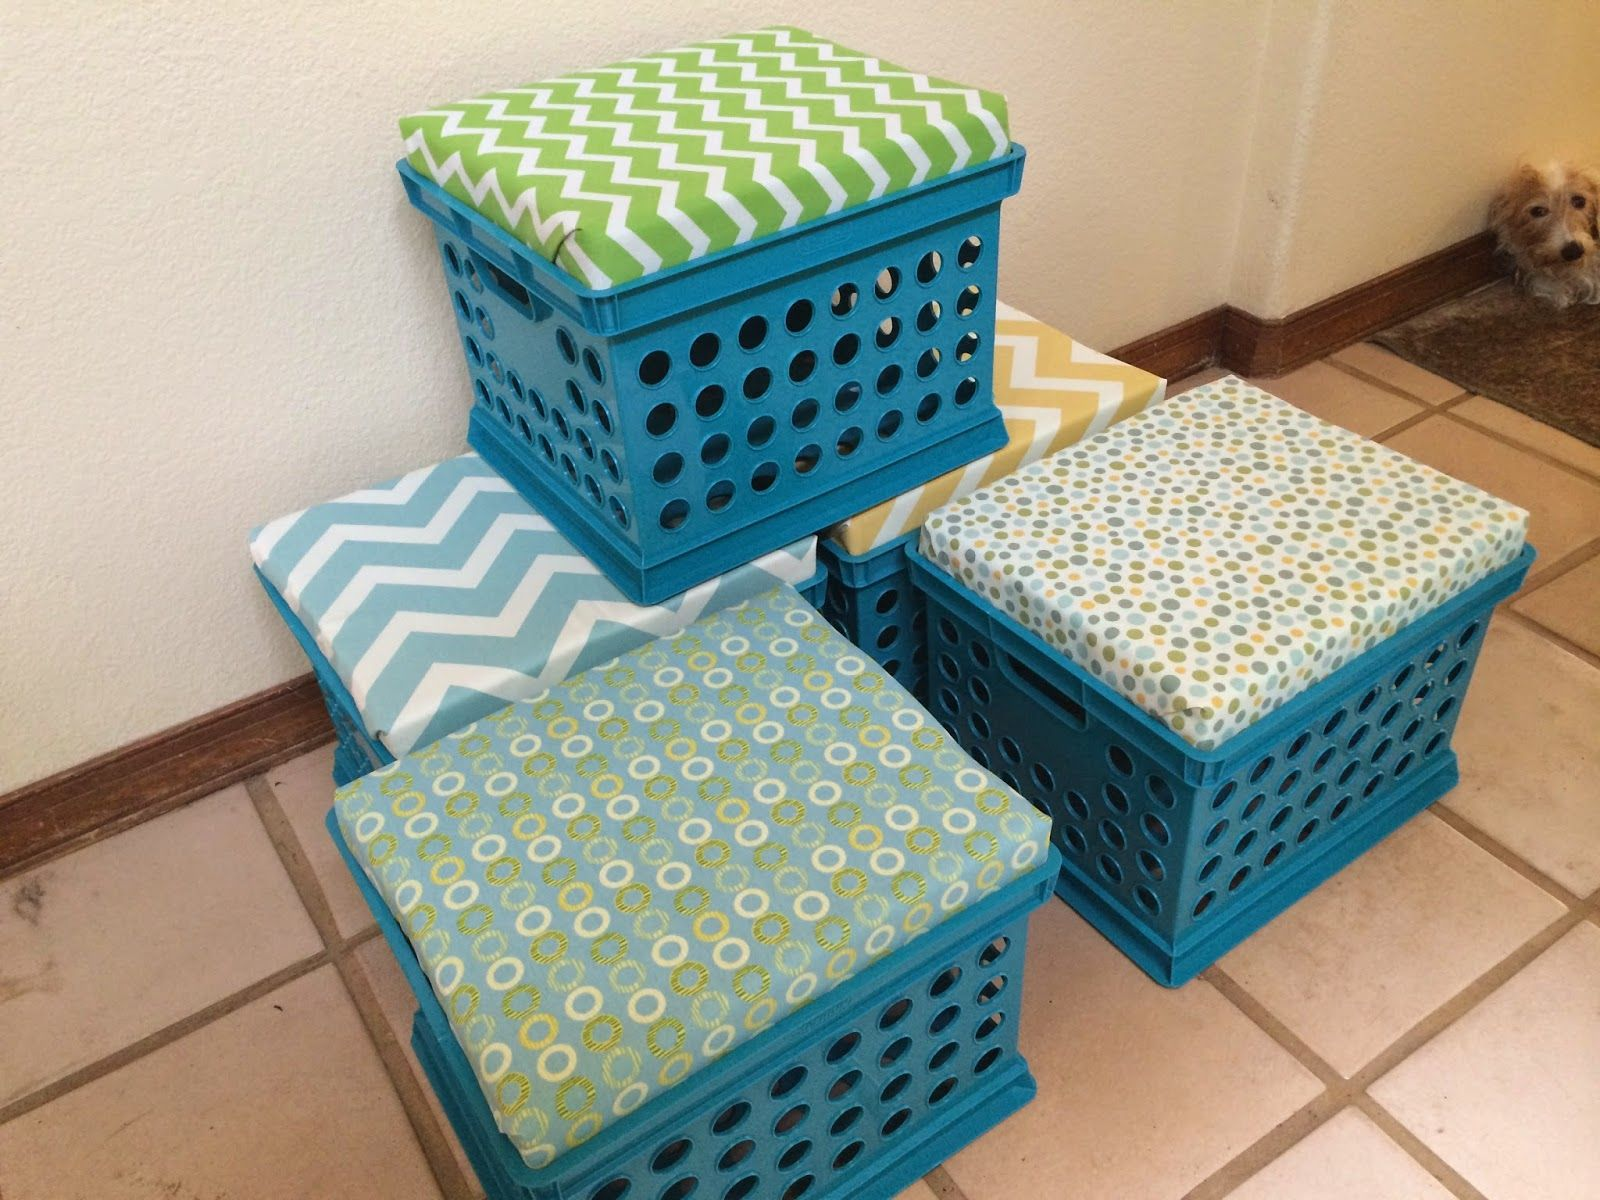 I Love My New Milk Crate Seats They Were Super Easy To Make And Look Great See What I Did With Step By Step Direct Crate Seats Diy Classroom Milk Crate Seats